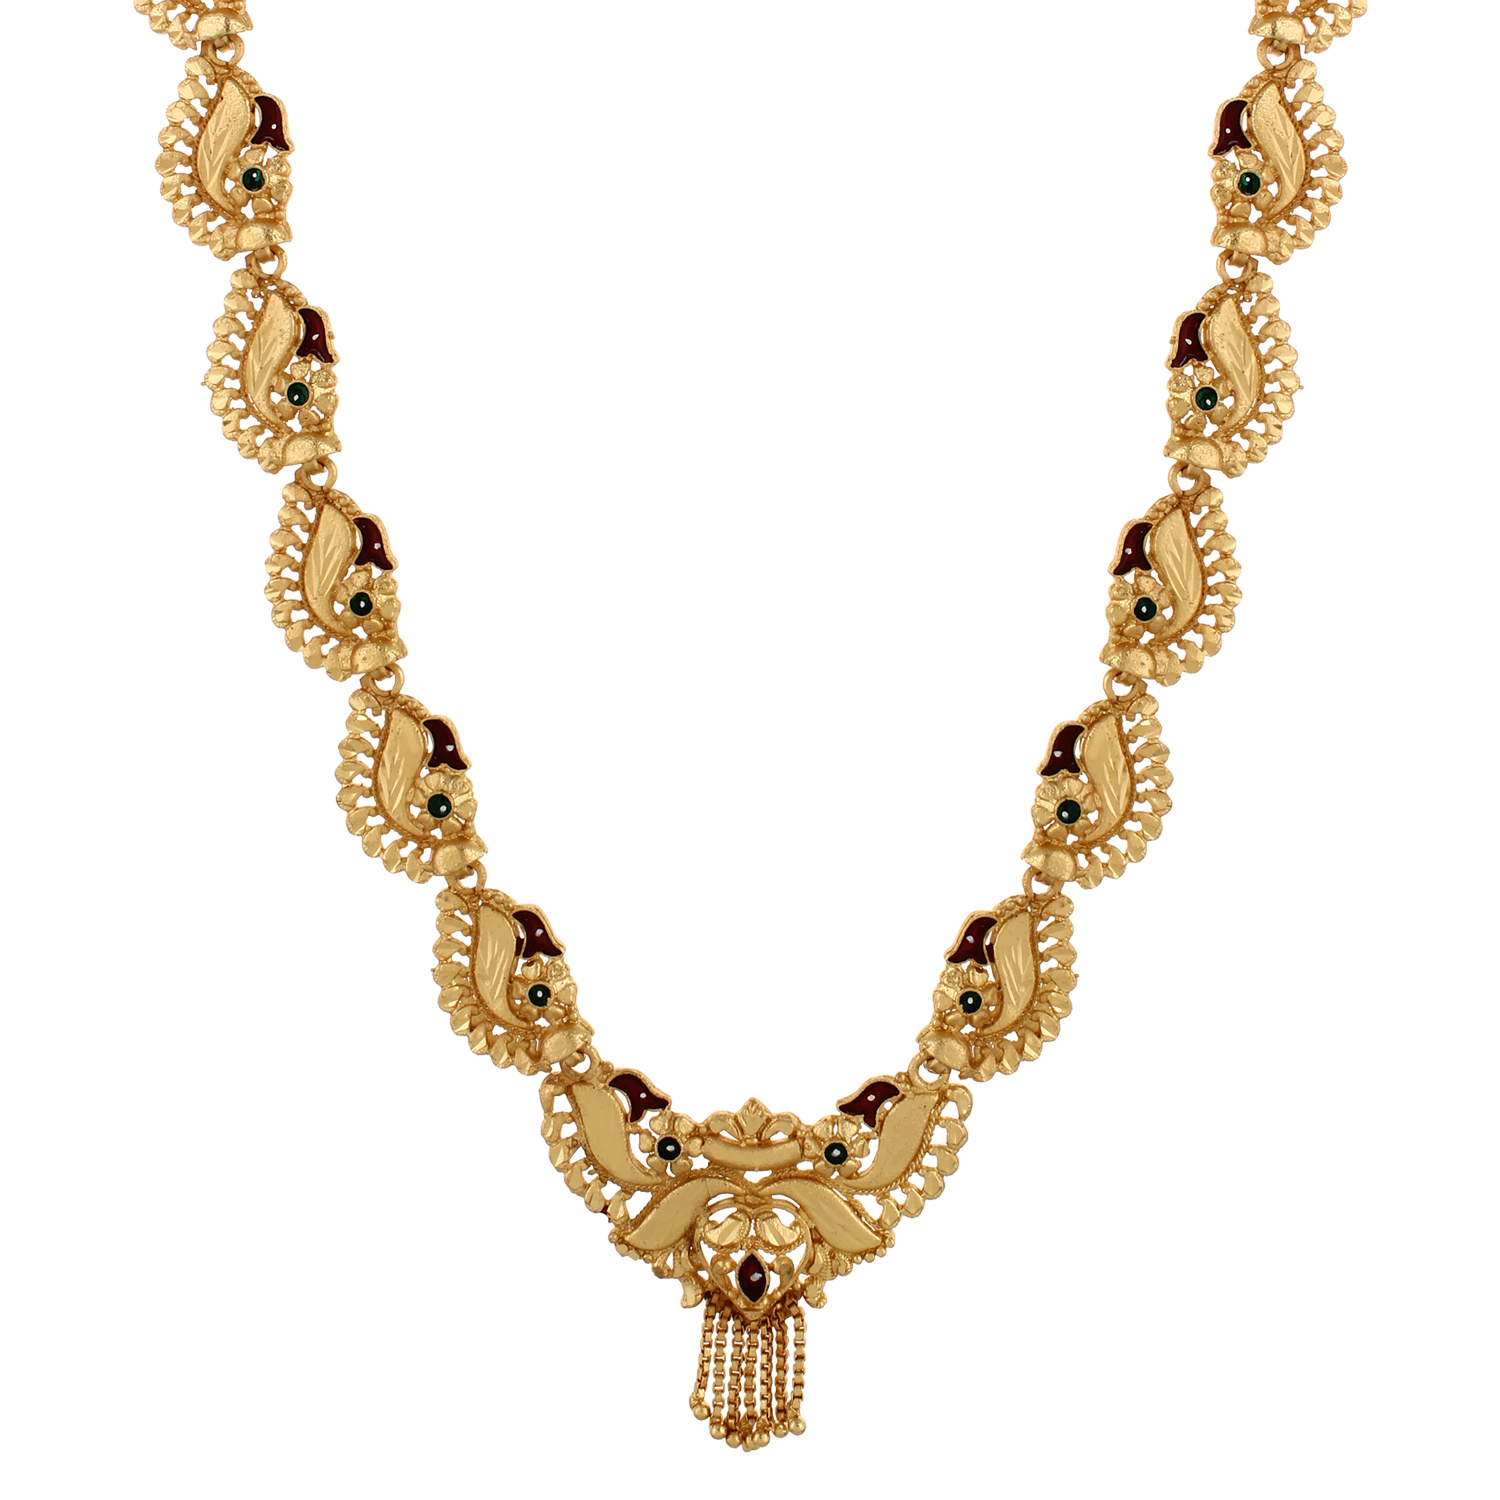 GoldNera Women Alloy Gold Plated Adjustable Necklace